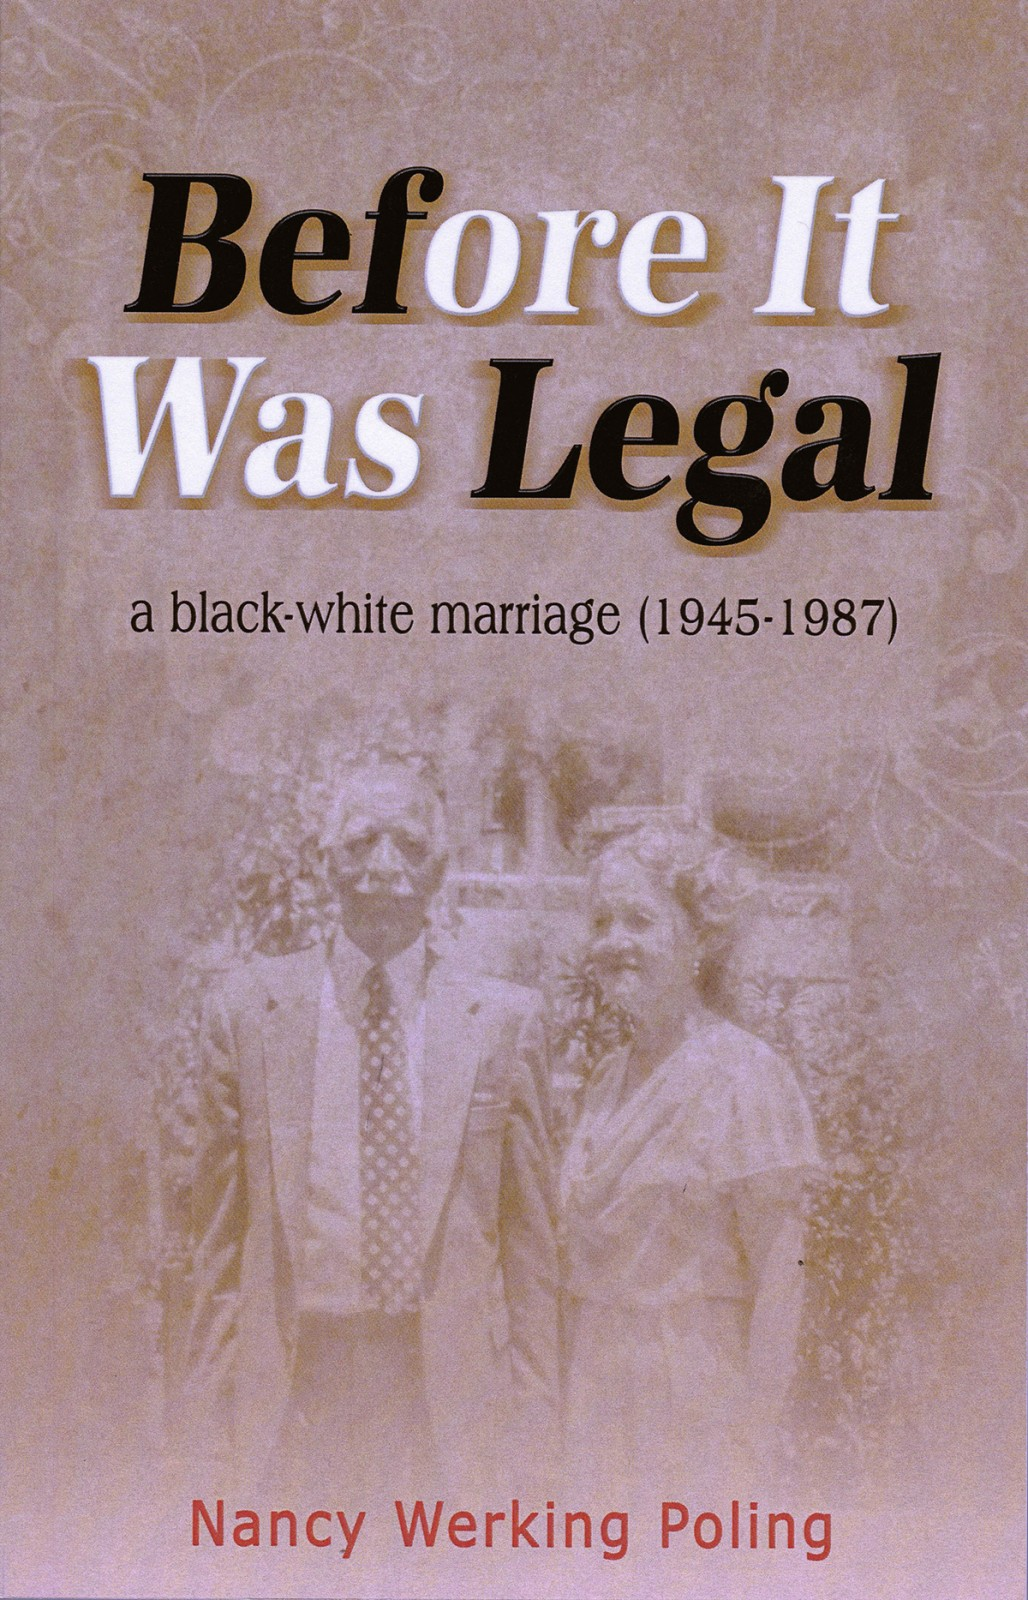 Book Feature: Before It Was Legal: A Black-White Marriage (1945-1987)